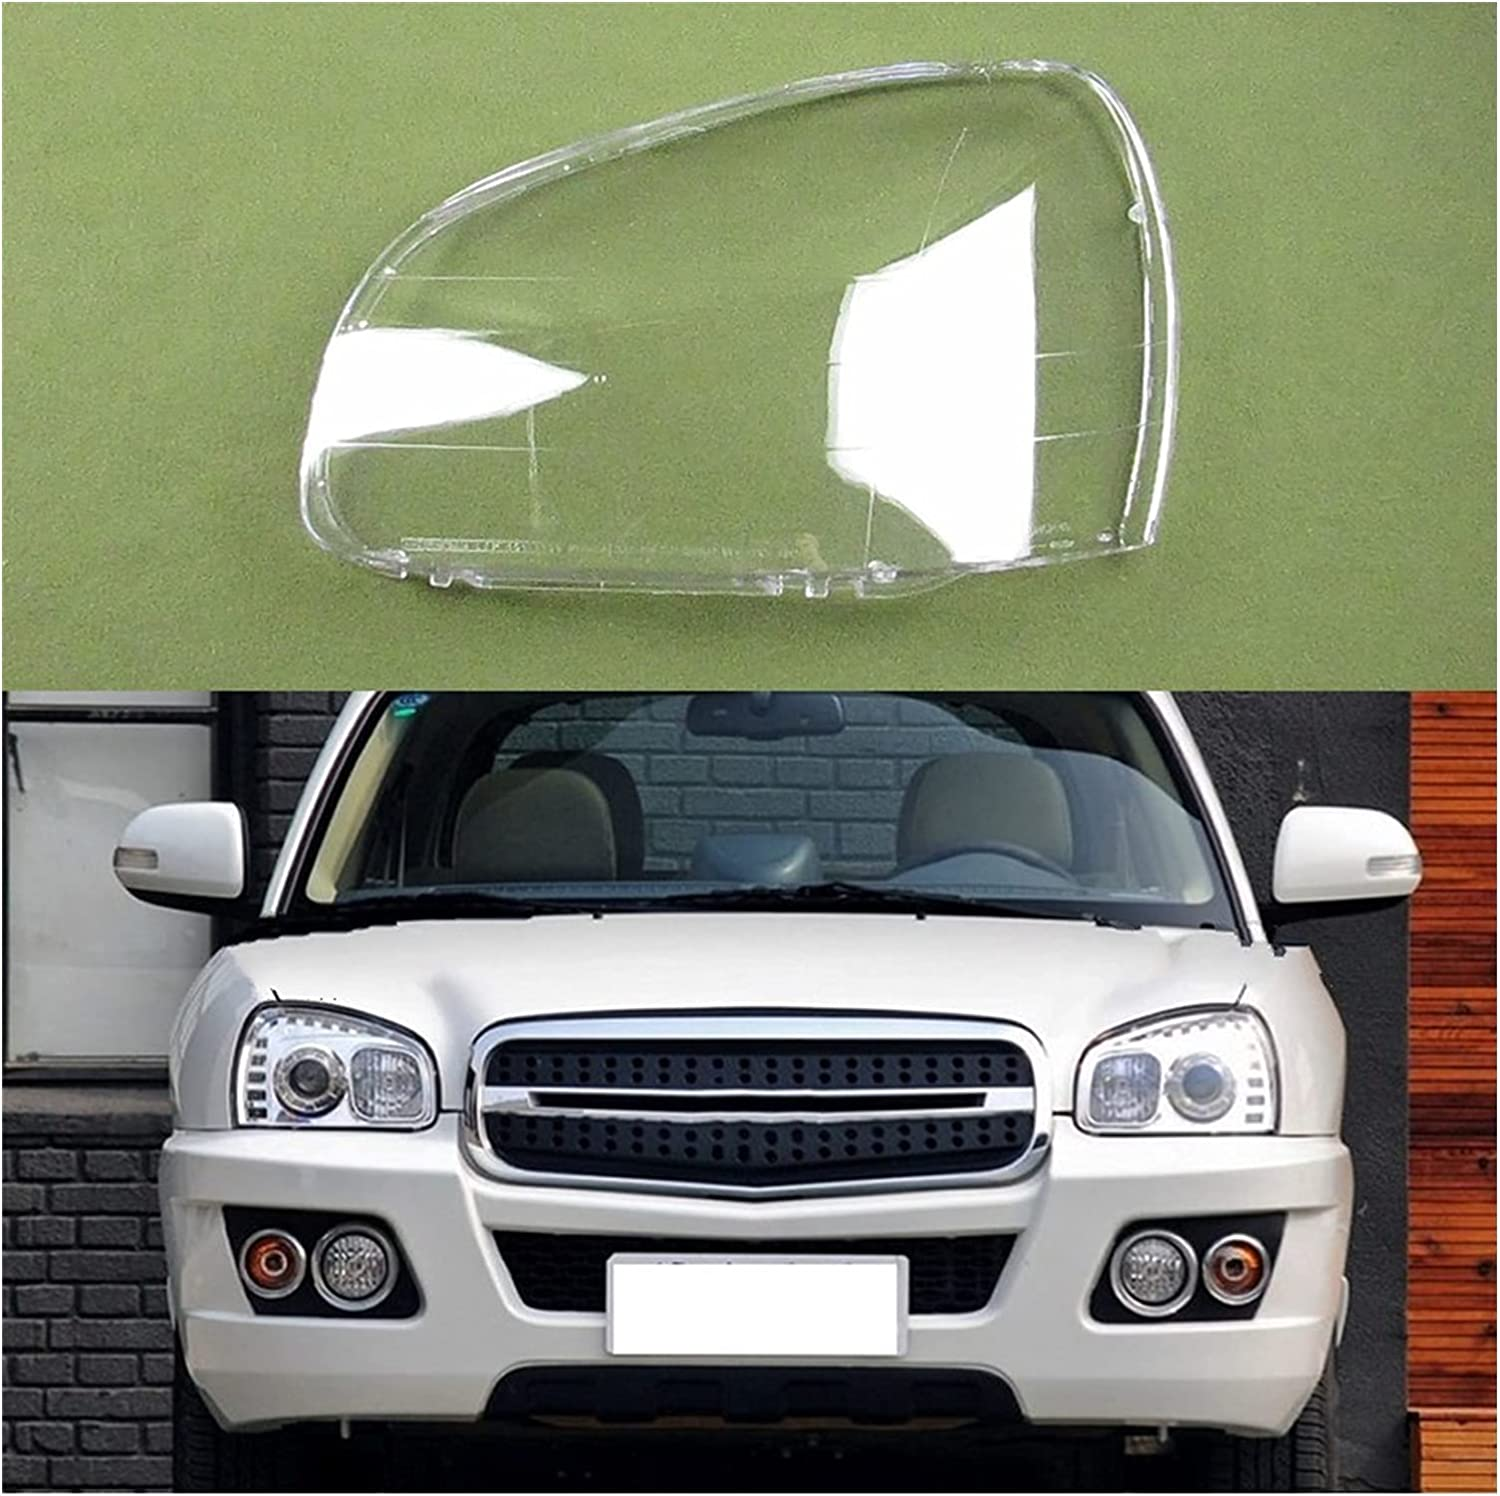 QUXING Transparent Automotive Headlight Covers Headlights Shell We OFFer at Mail order cheap cheap prices